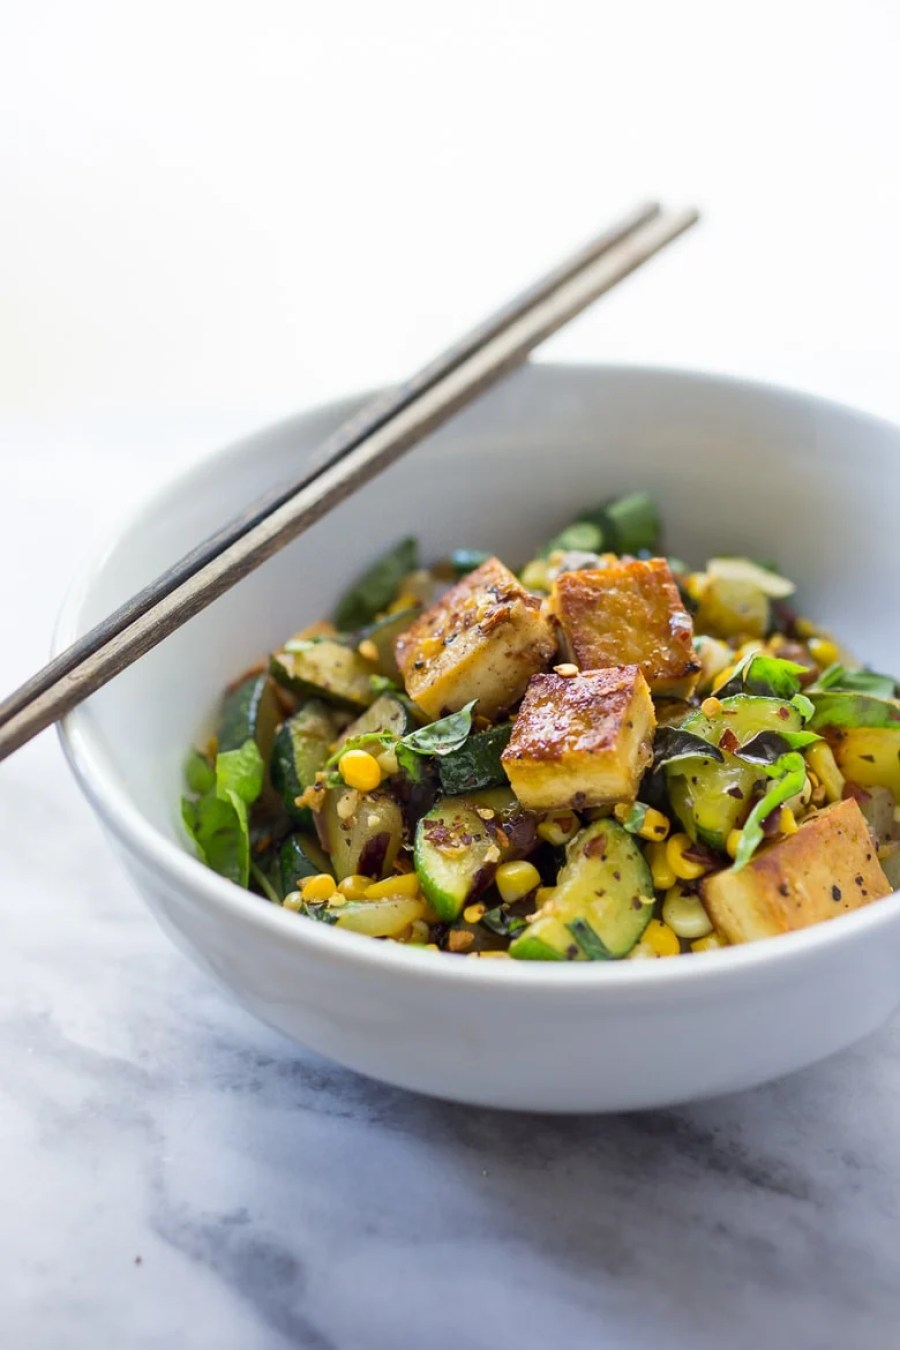 Zucchini, Corn and Basil Stir-fry